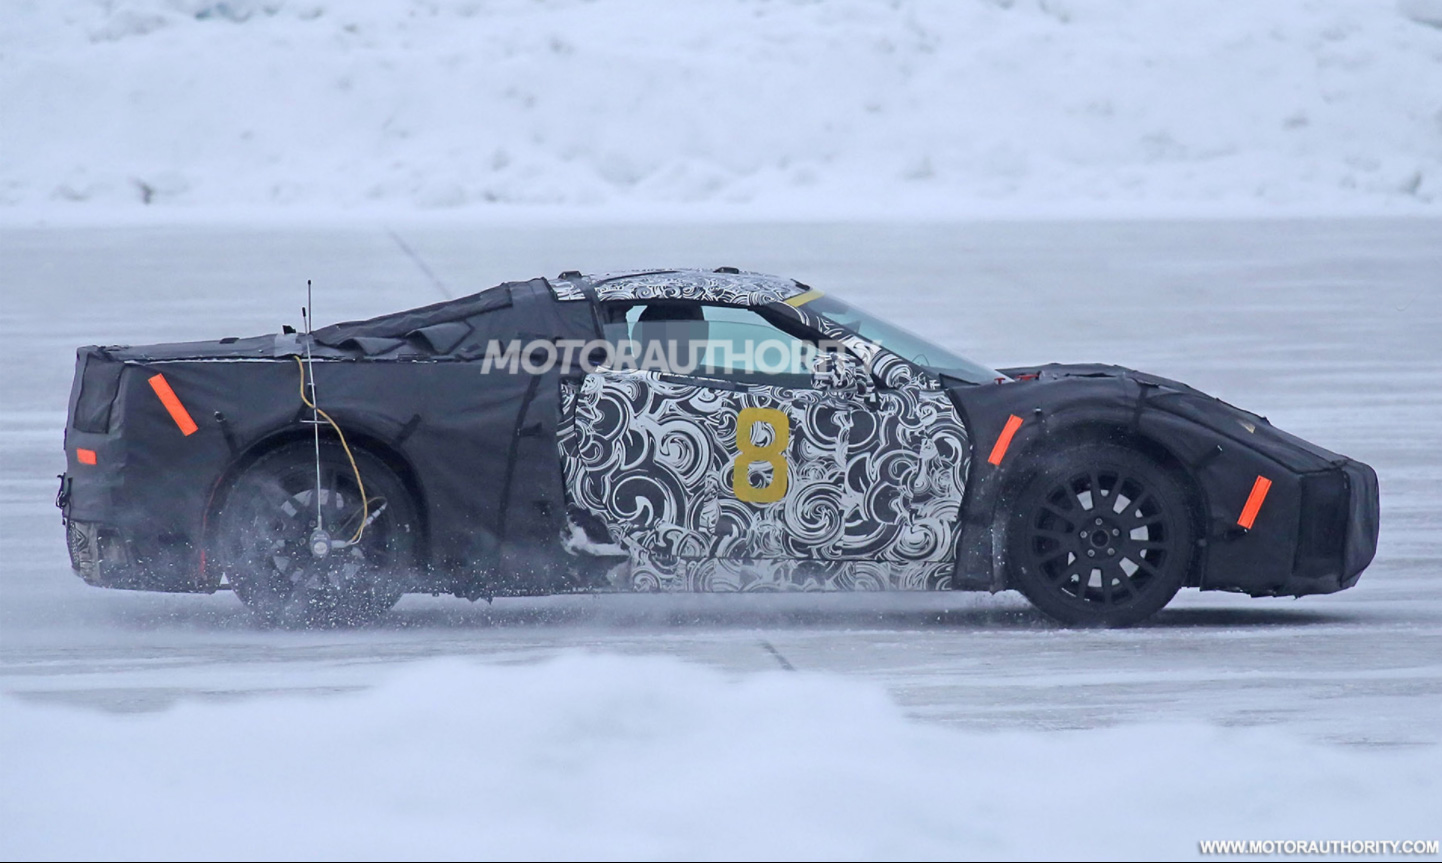 Valley Chevy - 2020 Chevrolet Corvette Spied - Pictures & Price